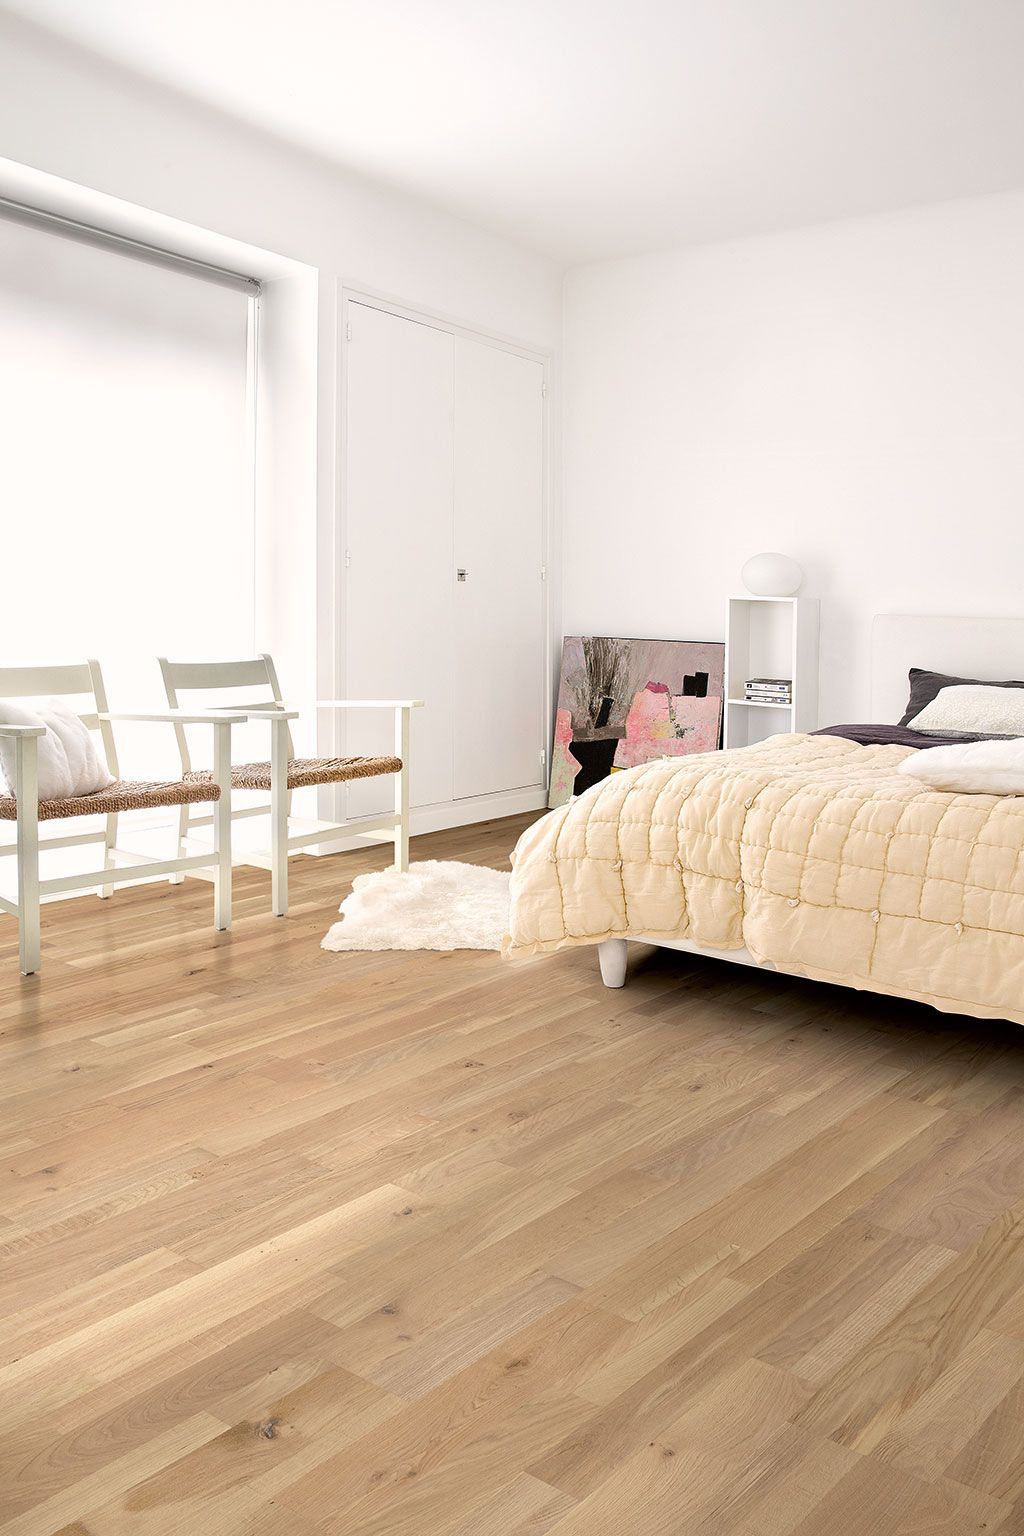 How To Find The Bedroom Flooring Of Your Dreams Bedroom Flooring Oak Flooring Bedroom Modern Bedroom